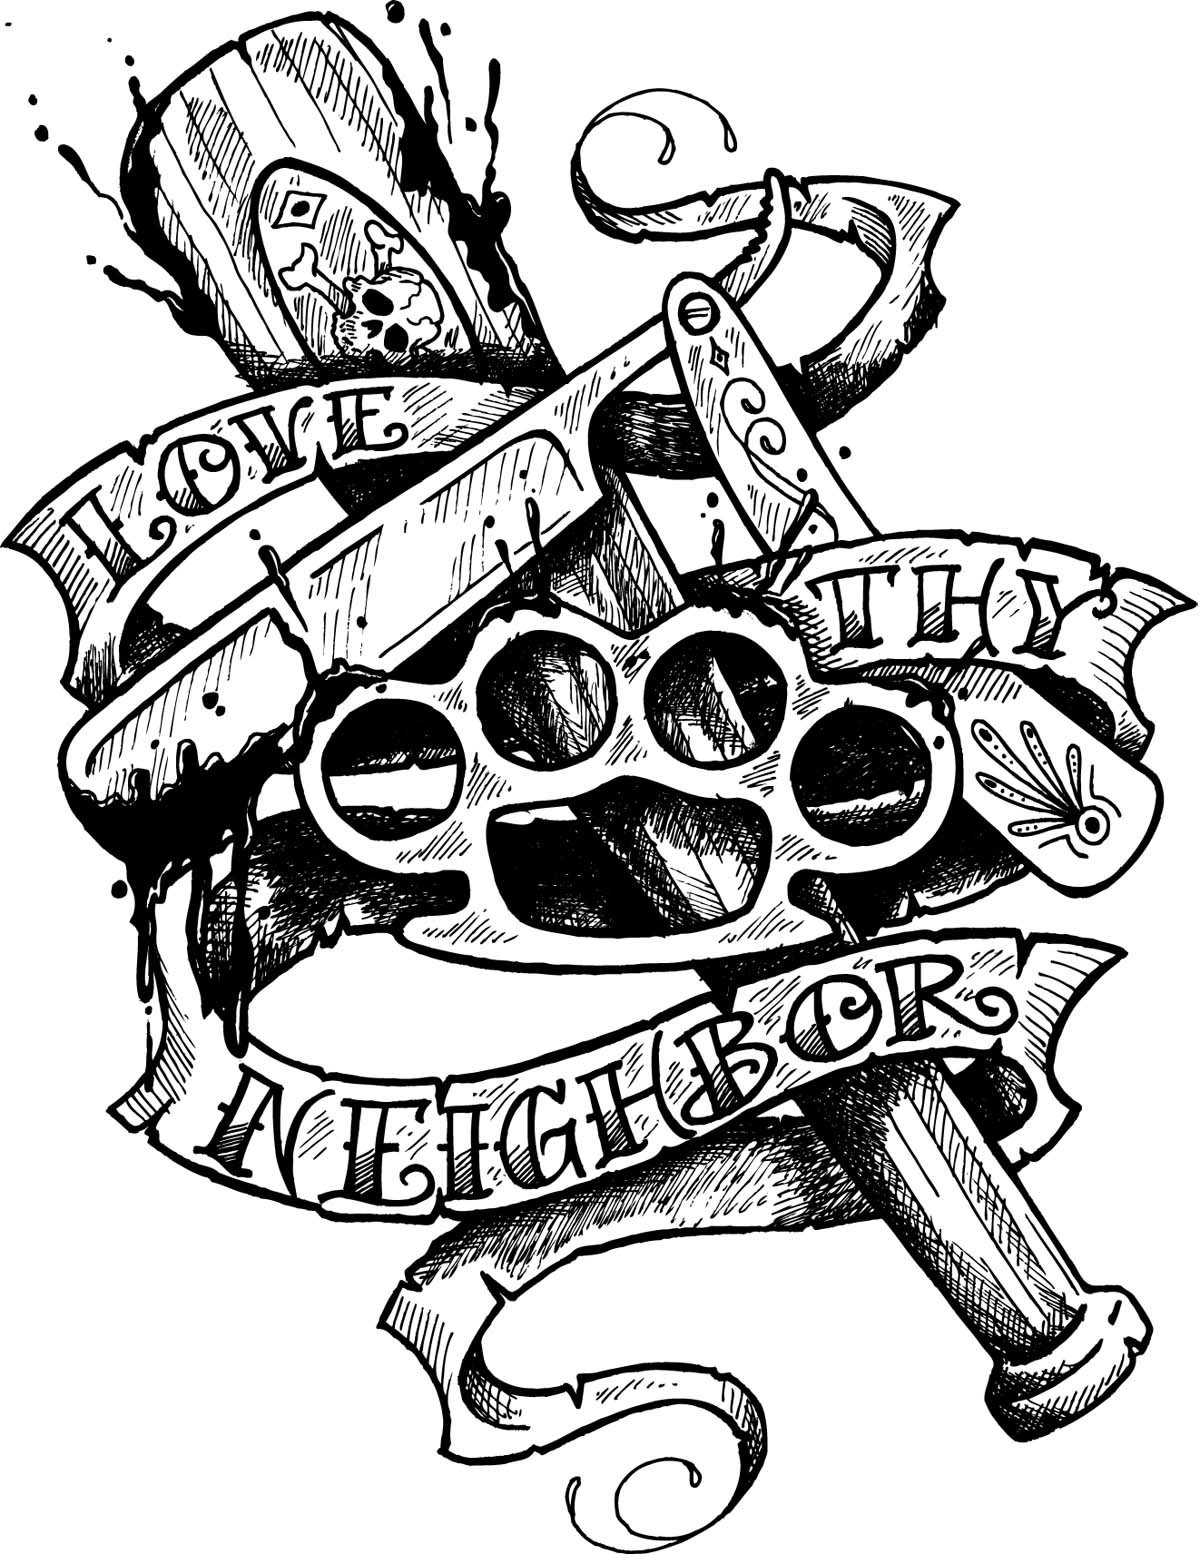 http://1.bp.blogspot.com/_eKiZYBPWOyw/TPfdGTtKFsI/AAAAAAAAAkA/nxq2Y5StJuk/s1600/love_thy_neighbor_tattoo_flash_by_SD_Designs.jpg